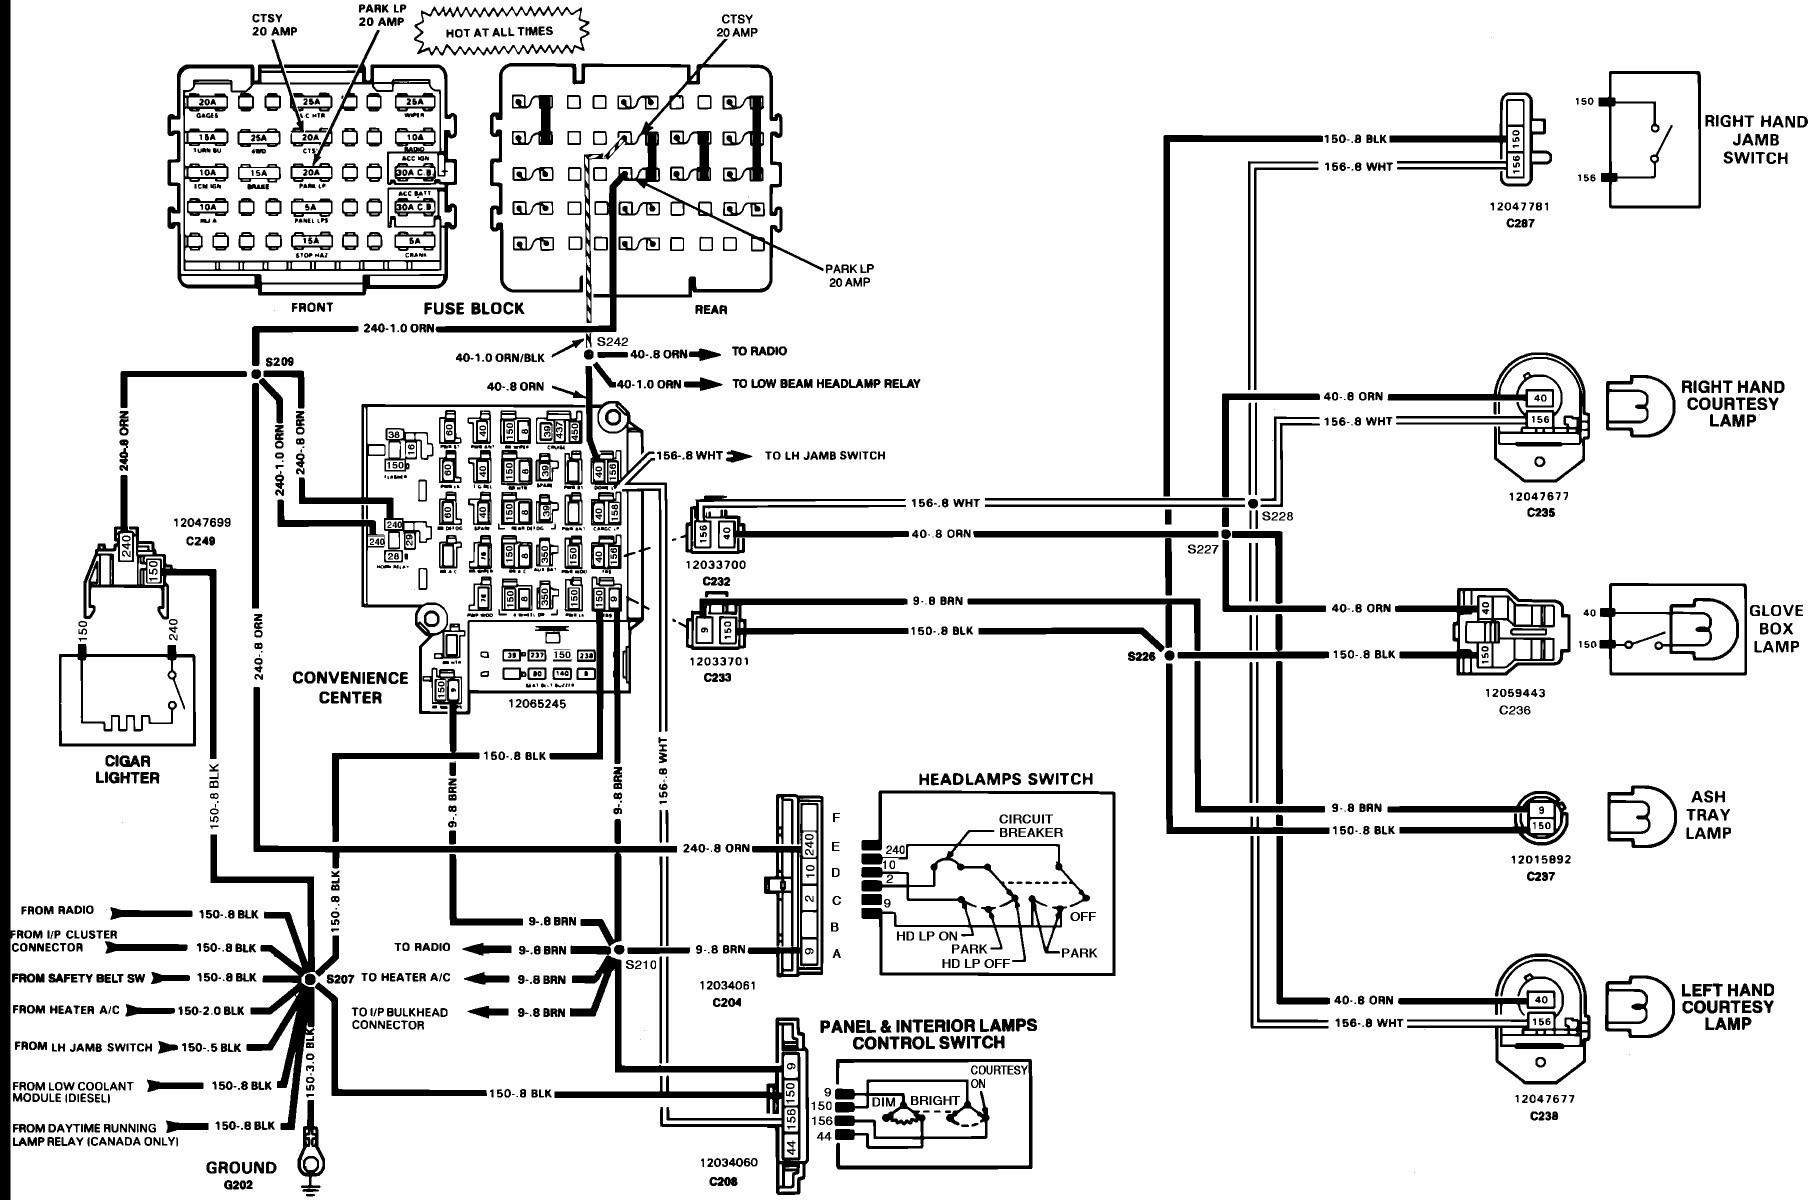 Willys Aero Wiring Diagram on 1952 willys wiring diagram, 1958 willys wiring diagram, 1953 willys wiring diagram, 1955 willys wiring diagram, 1954 willys water pump,